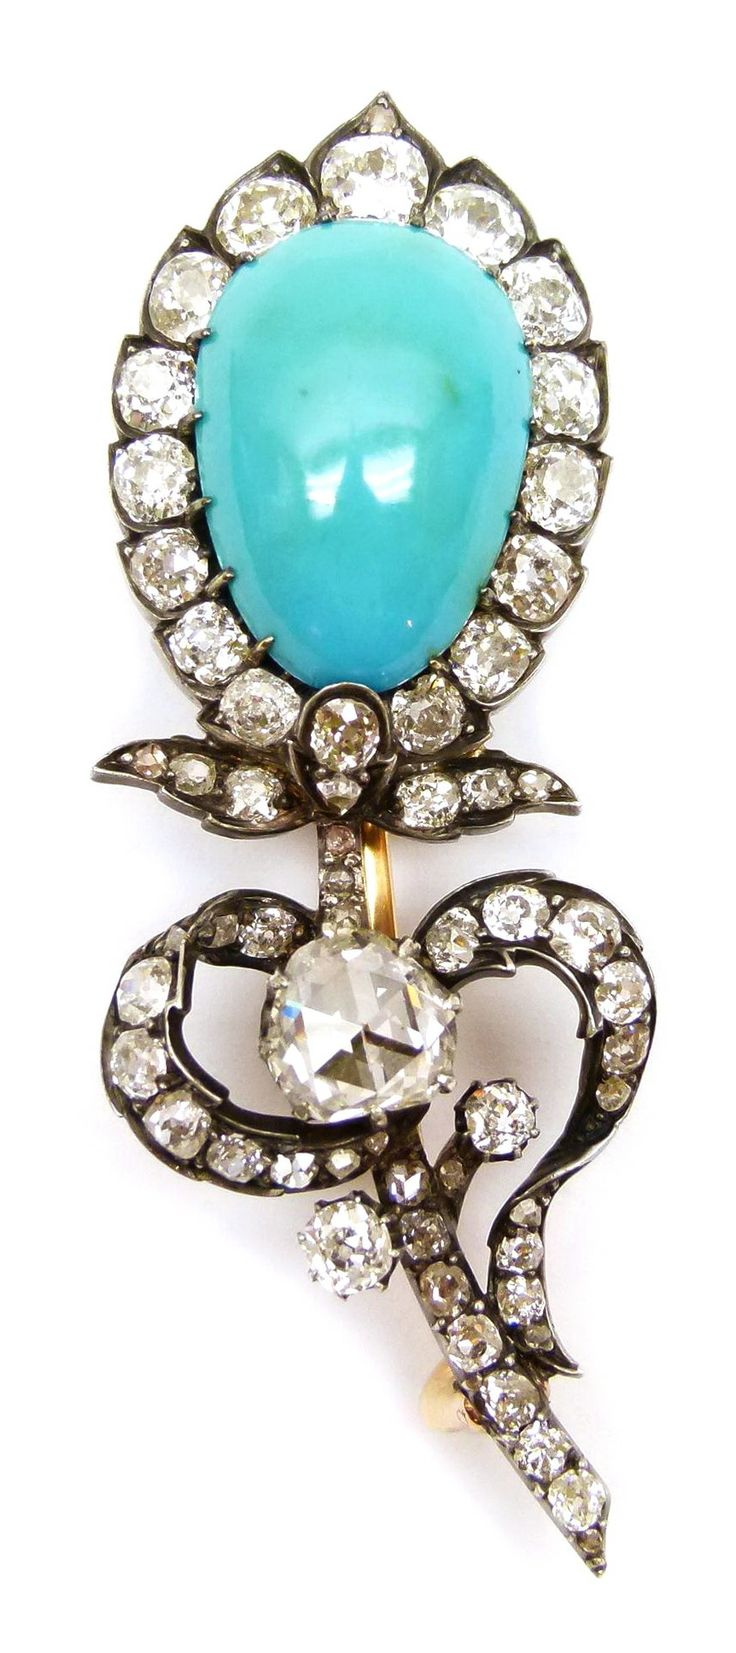 19th century turquoise and diamond cluster stylised flower brooch, French c.1840, an inverted pear shaped turquoise within a diamond border forming the principal flower bud, to a diamond set stem with curling foliage, a rose cut diamond and two smaller diamonds forming buds, open set in silver and gold